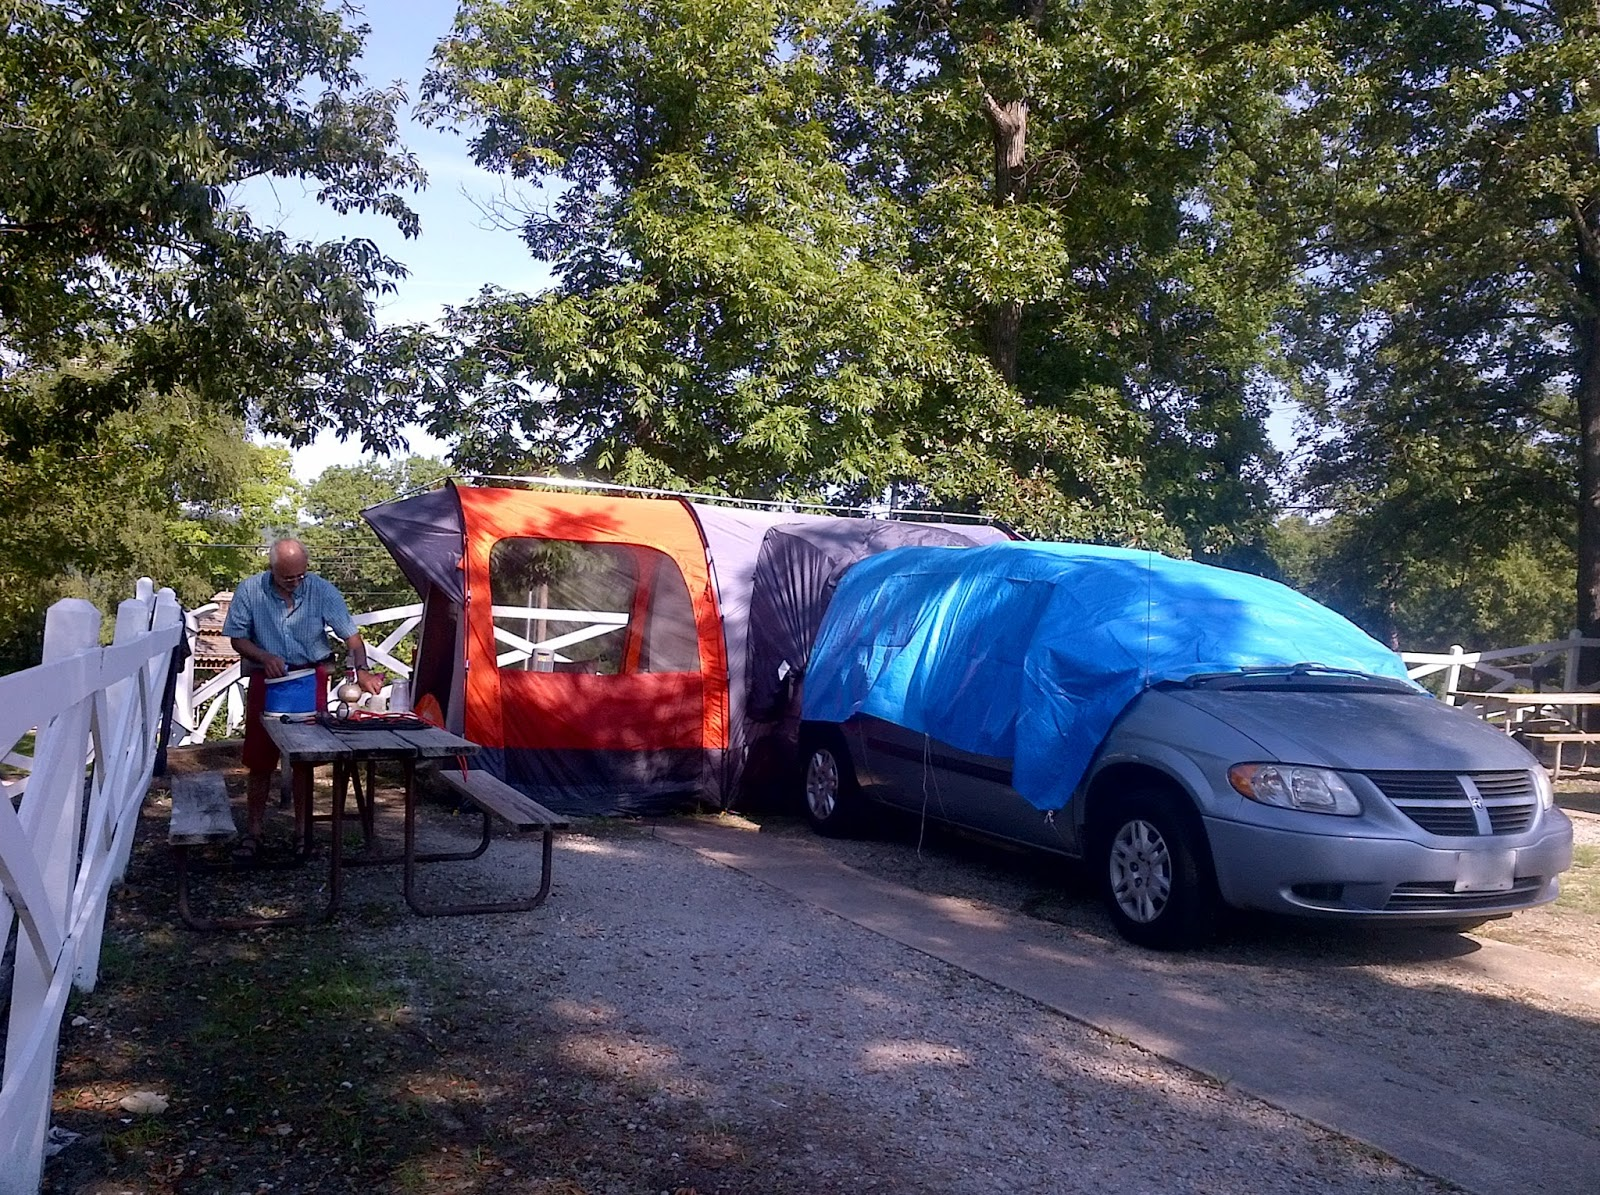 Paul and I believe that it is and so we have decided that todayu0027s blog will highlight our Rightline SUV Tent. & Grandparents u0026 Grandchildren: Rightline Gear SUV Tent